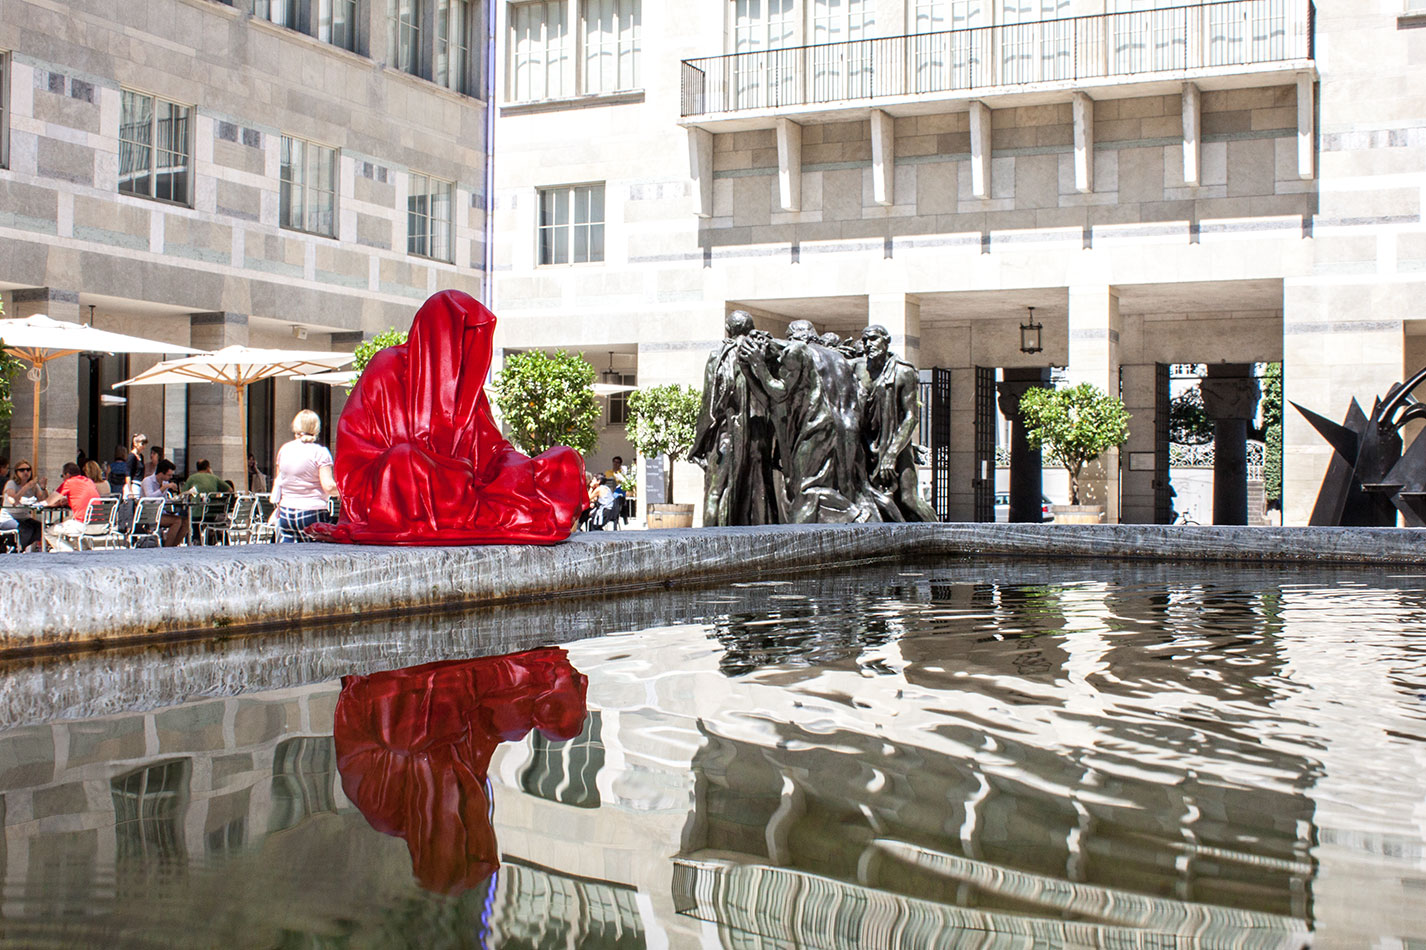 highlights-public-artbasel-kunsthaus-basel-scope-art-show-guardians-of-time-manfred-kielnhofer-steinreich-contemporary-art-sculpture-tour-art-parcours-1607